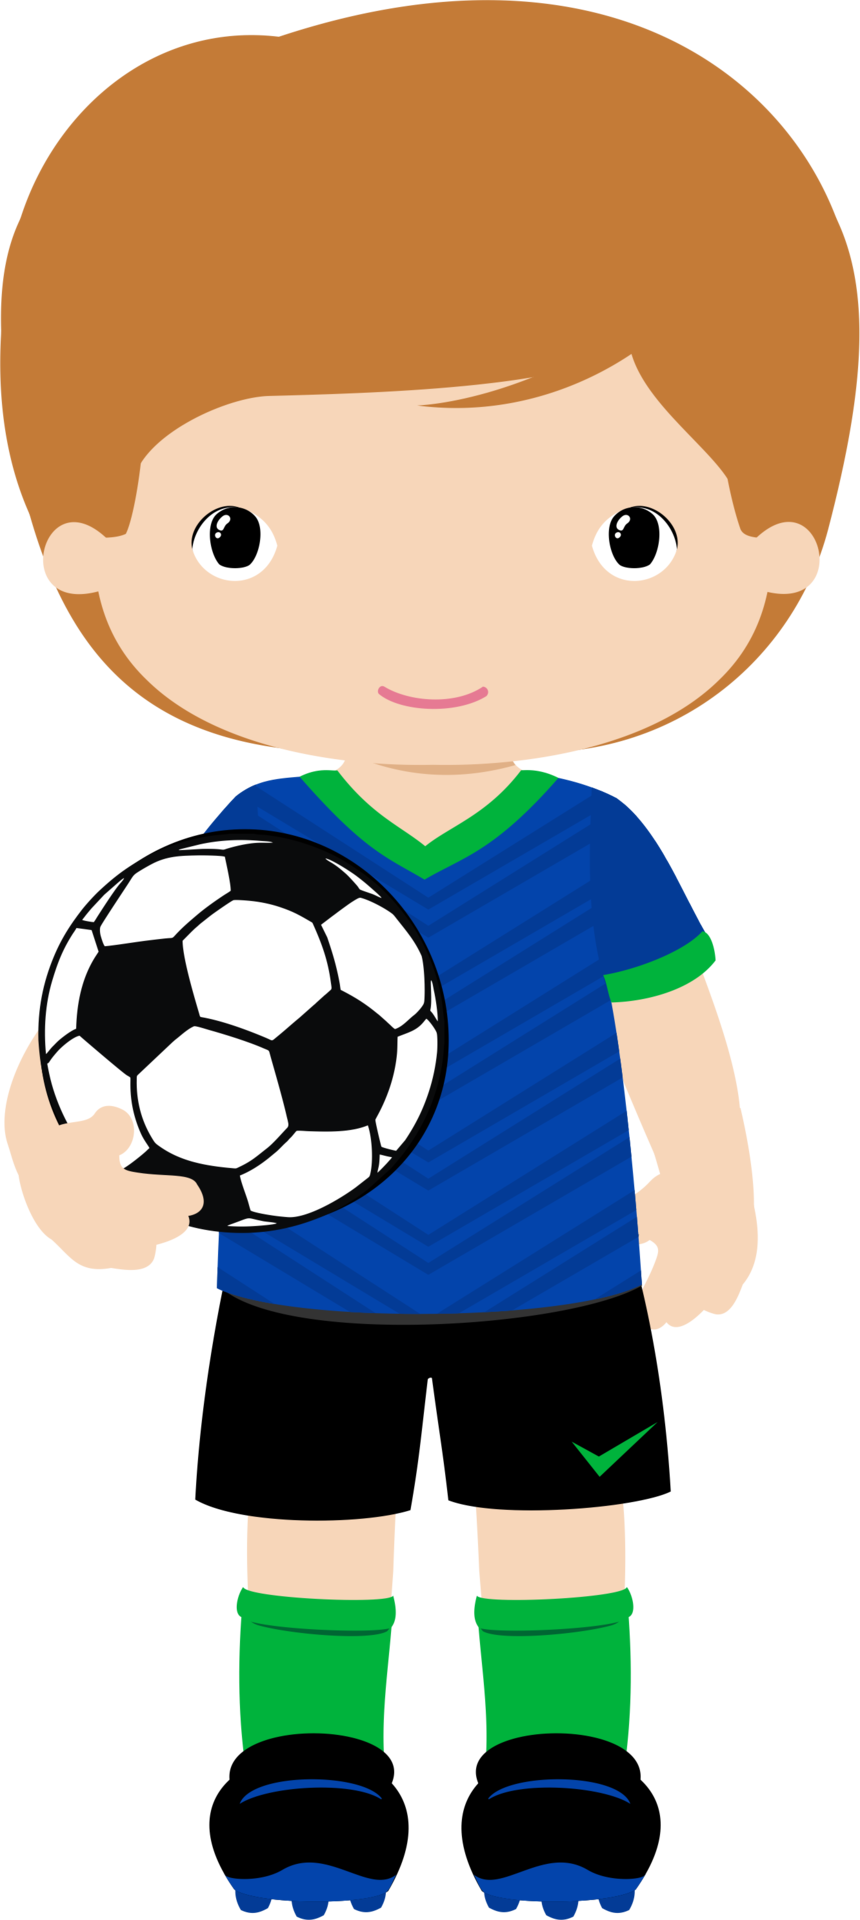 shared ver todas. Gate clipart soccer